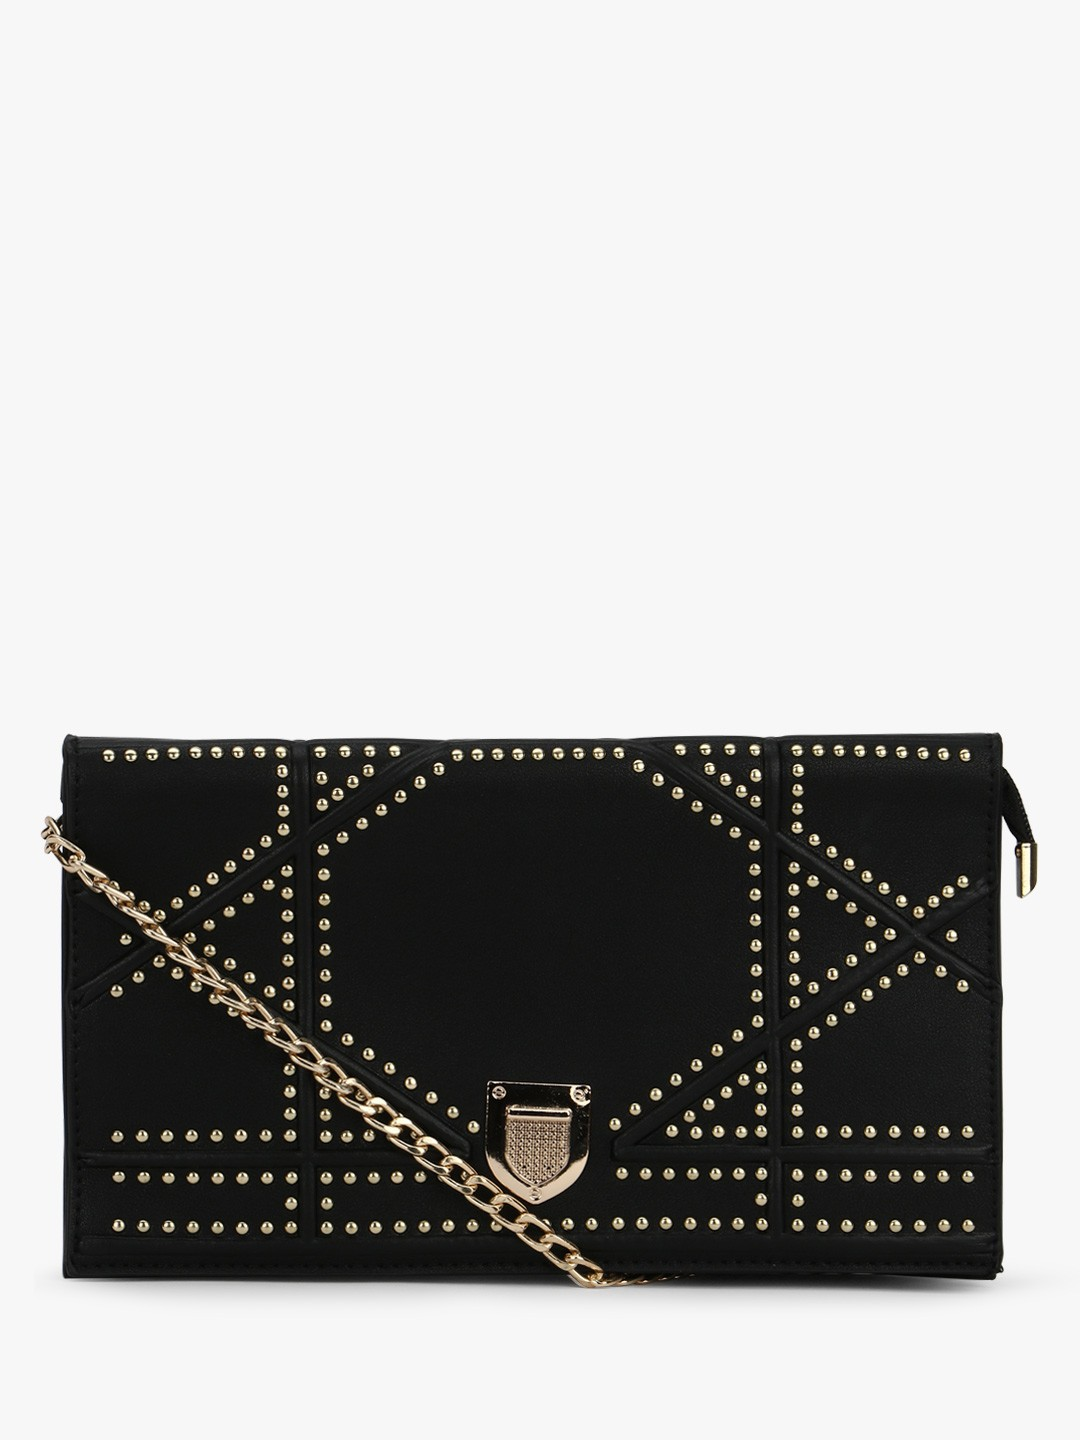 Origami Lily Black Studded Clutch Bag 1